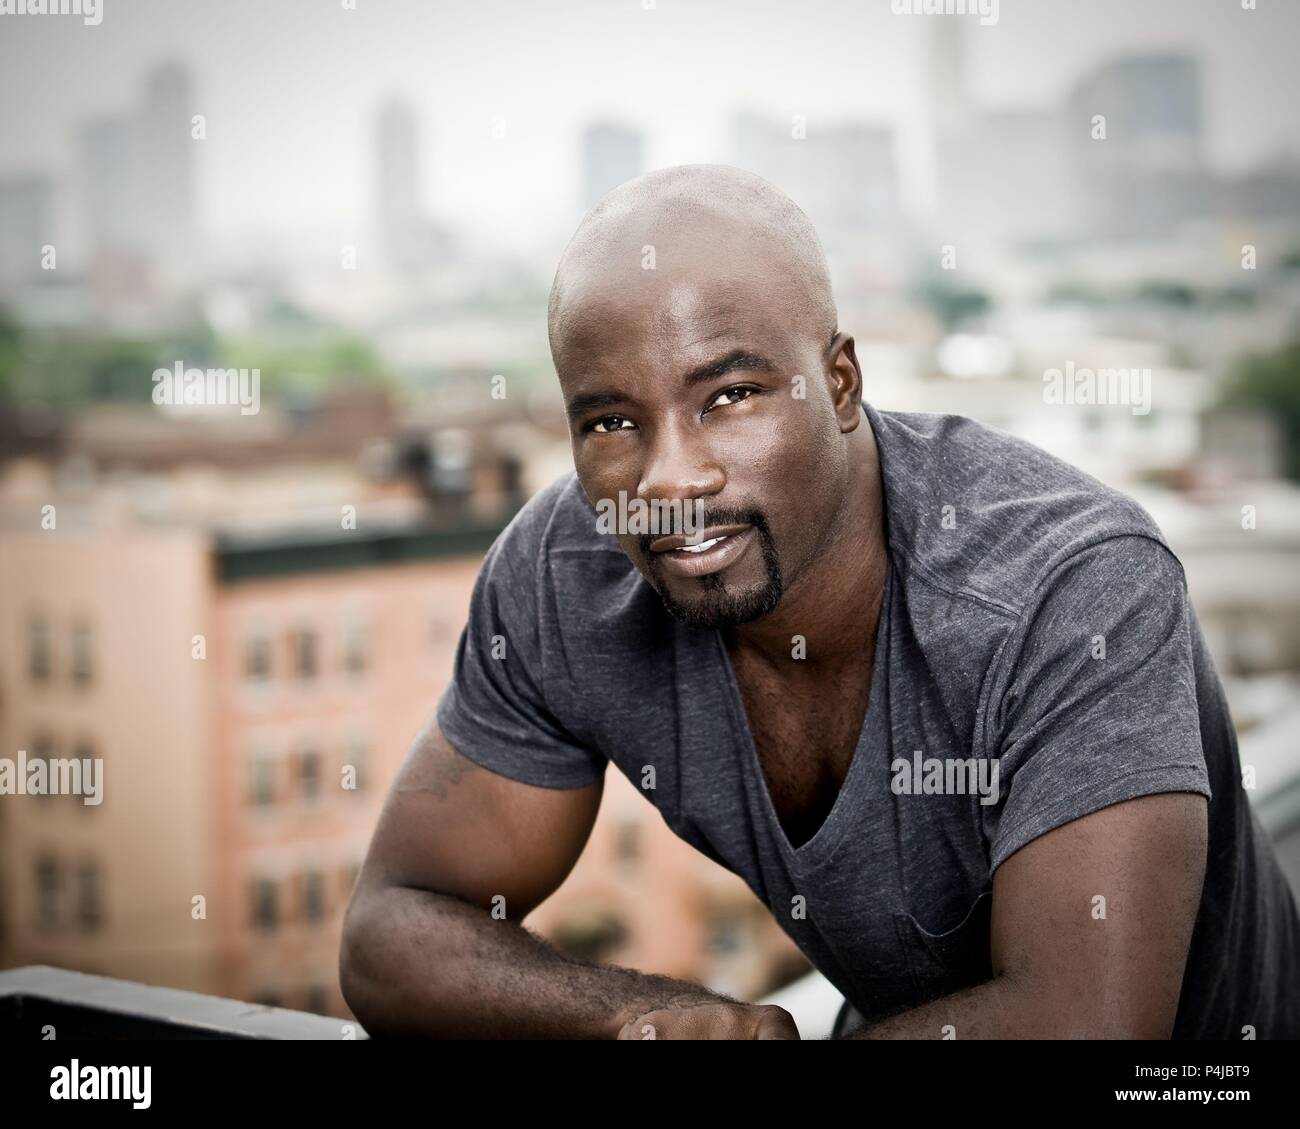 Original Film Title: LUKE CAGE.  English Title: LUKE CAGE.  Film Director: CHEO HODARI COKER.  Year: 2016.  Stars: MIKE COLTER. Credit: NETFLIX / Album Stock Photo